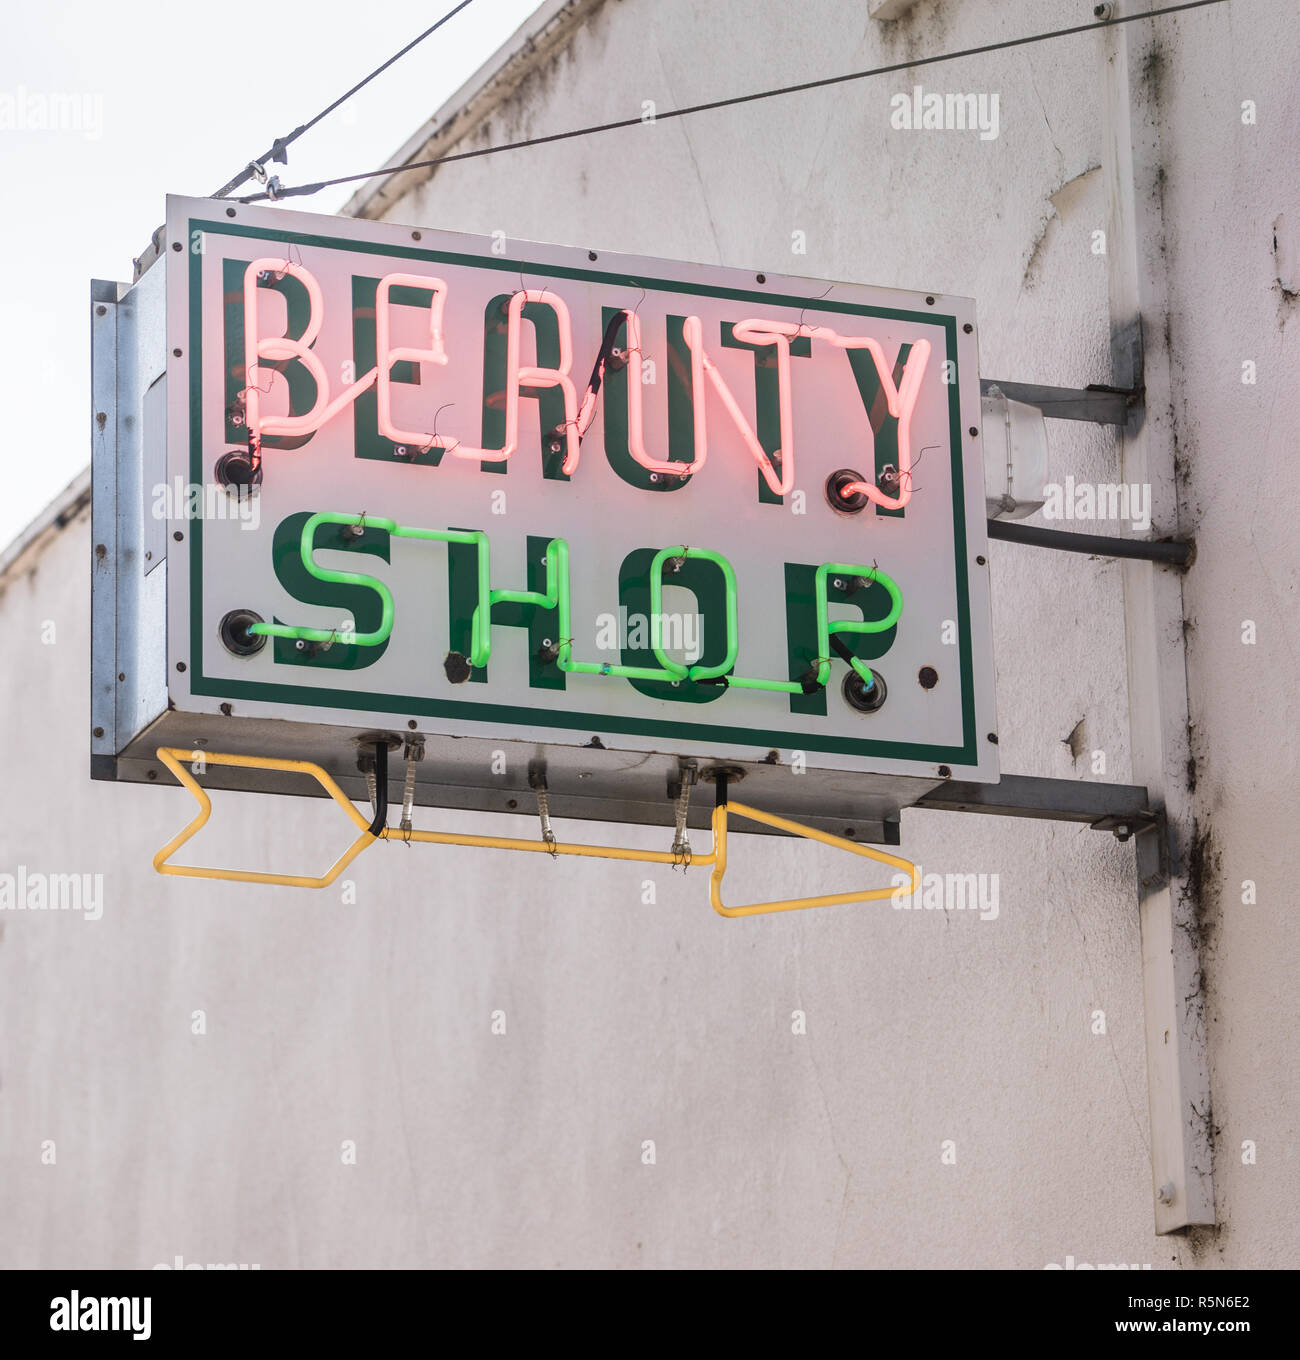 Old Small Town Neaon Beauty Shop Sign Vintage Signage - Stock Image